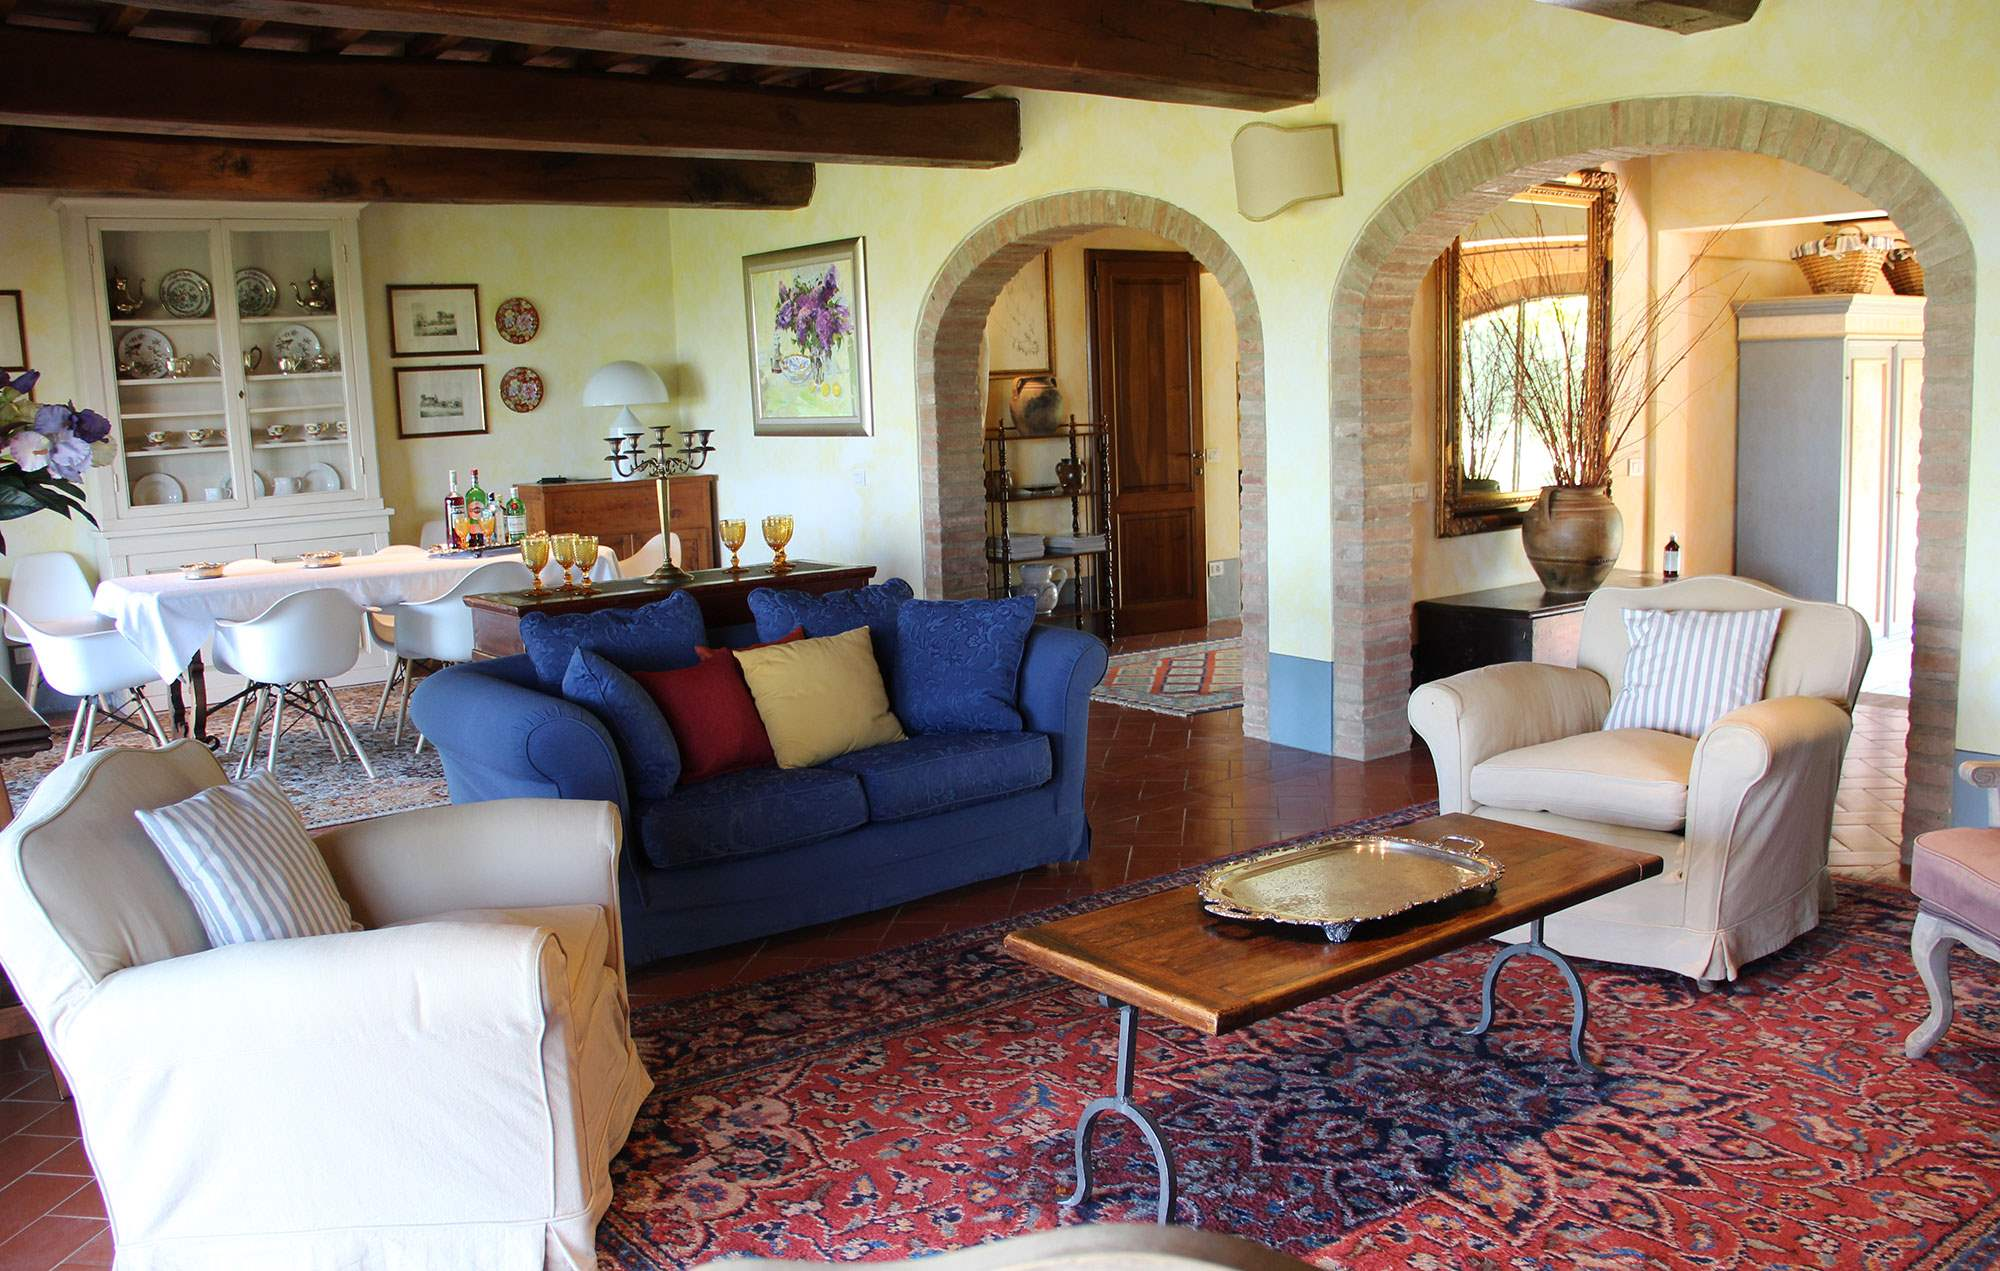 Villa Capanna, 3 bedroom villa in Chianti & Countryside, Tuscany Photo #3